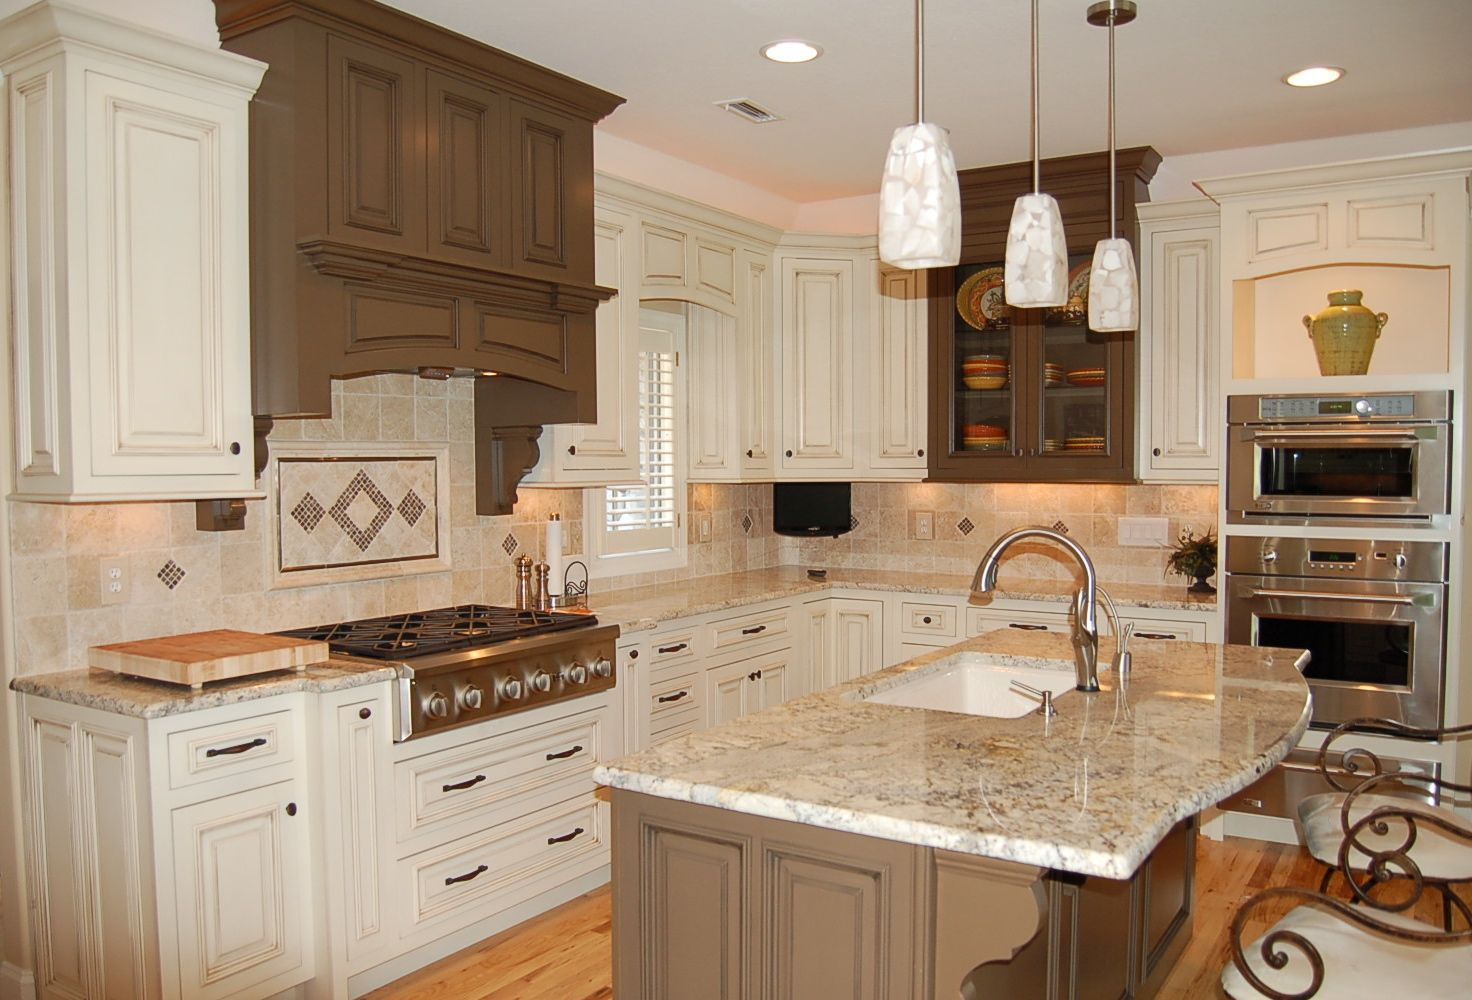 hanging kitchen lights over island cabinet door knobs pendant lighting for the home